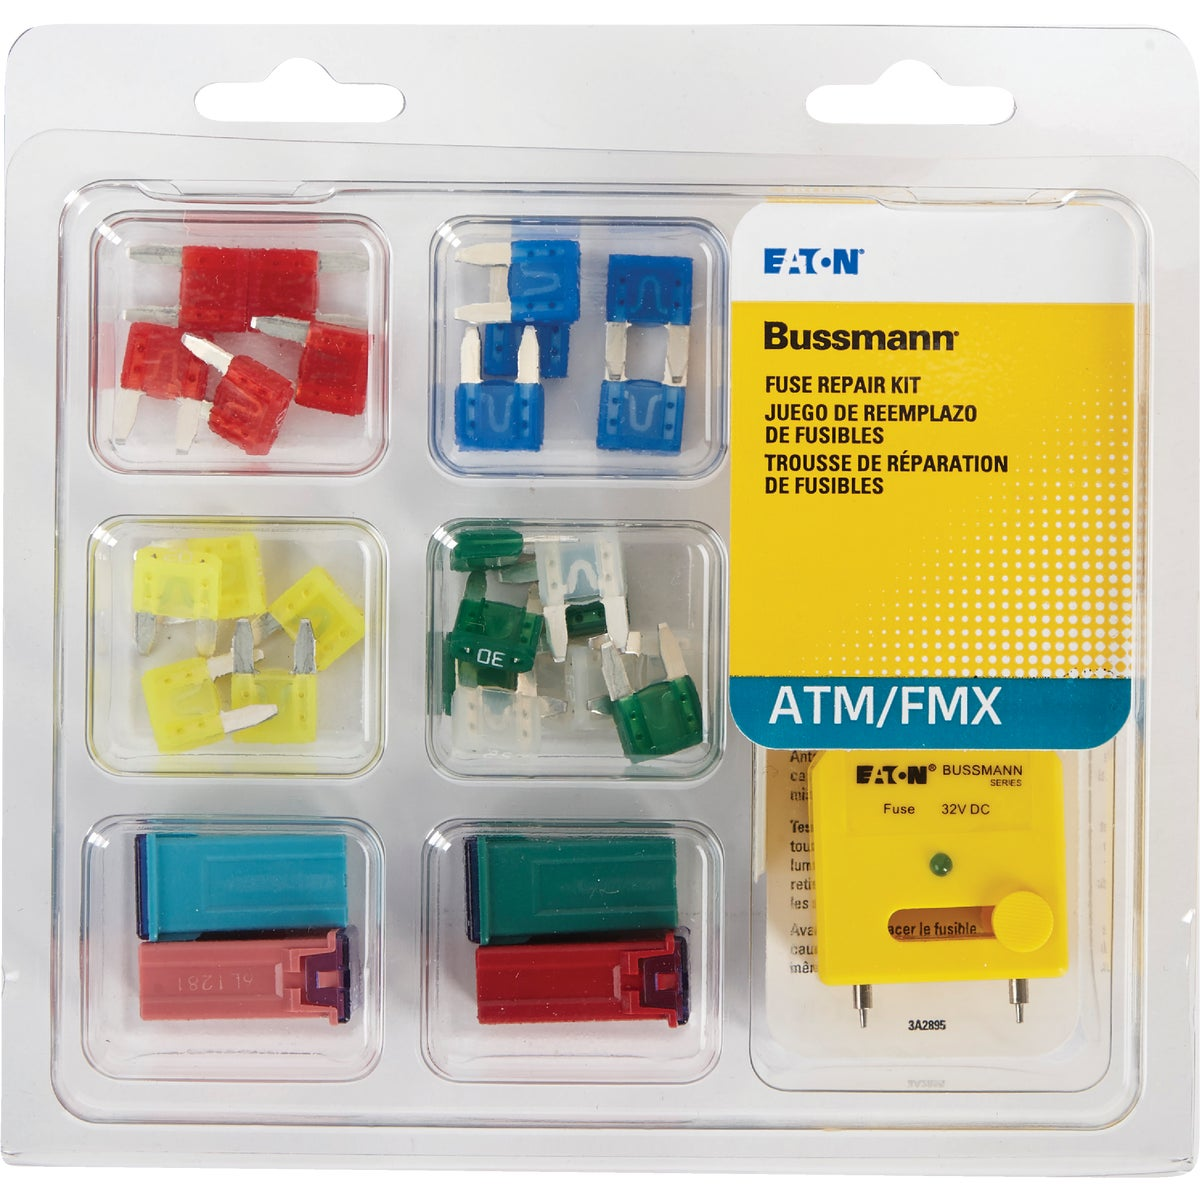 ATM AND FMX FUSE KIT